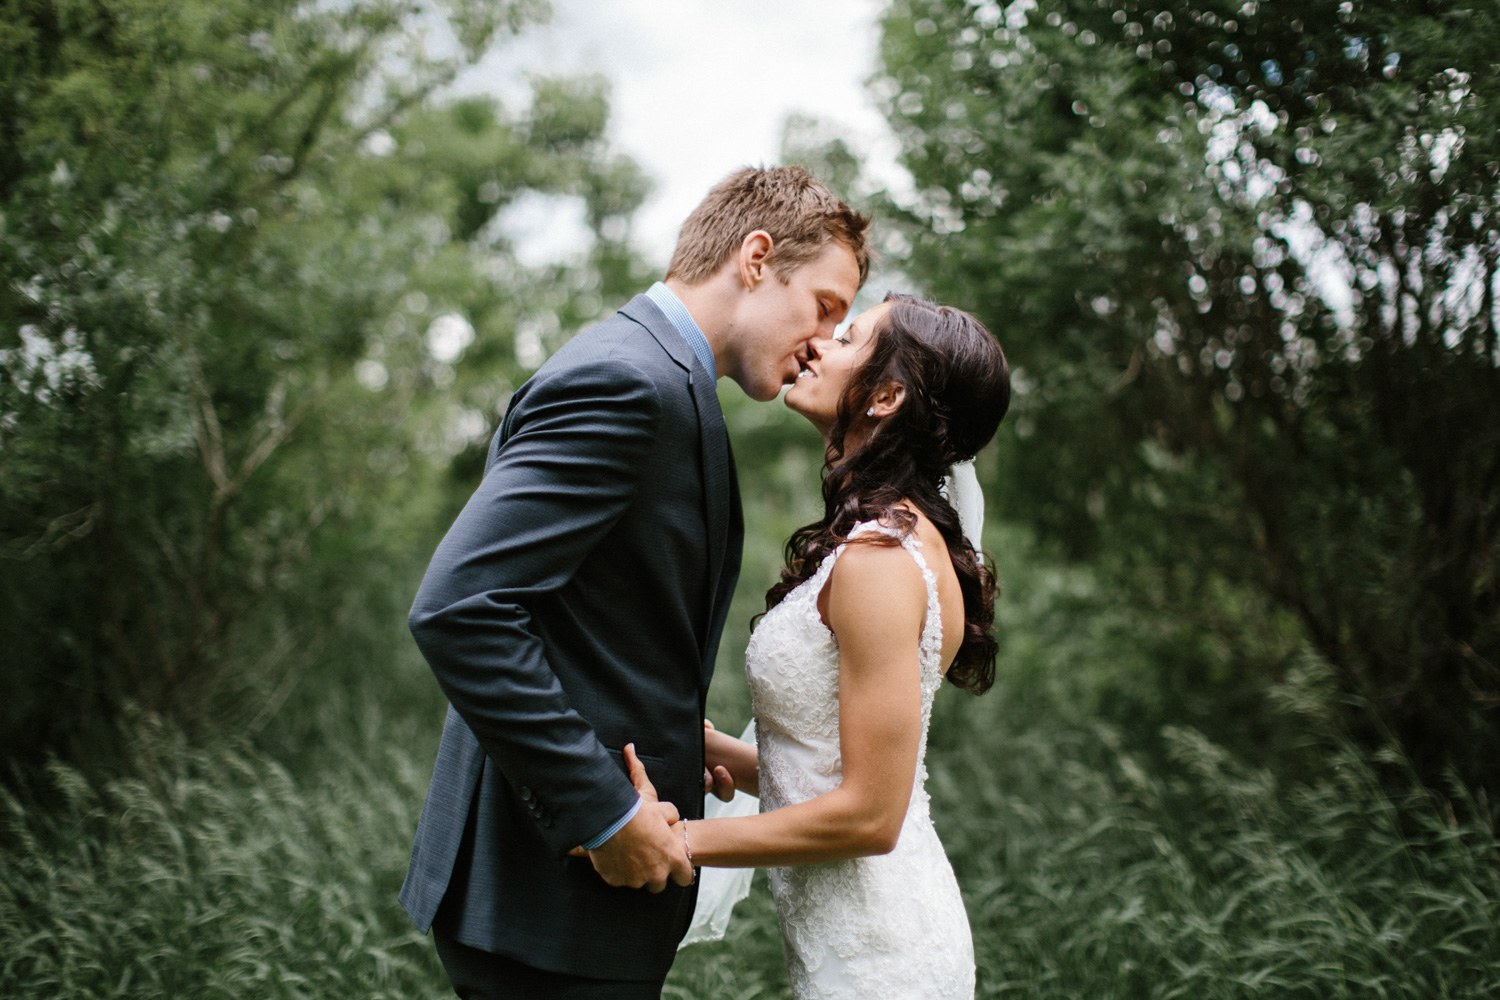 Outdoor_Wedding_SiouxFalls_MaryJoWegnerArboretum_Photographer_Calli&Jon_047.jpg